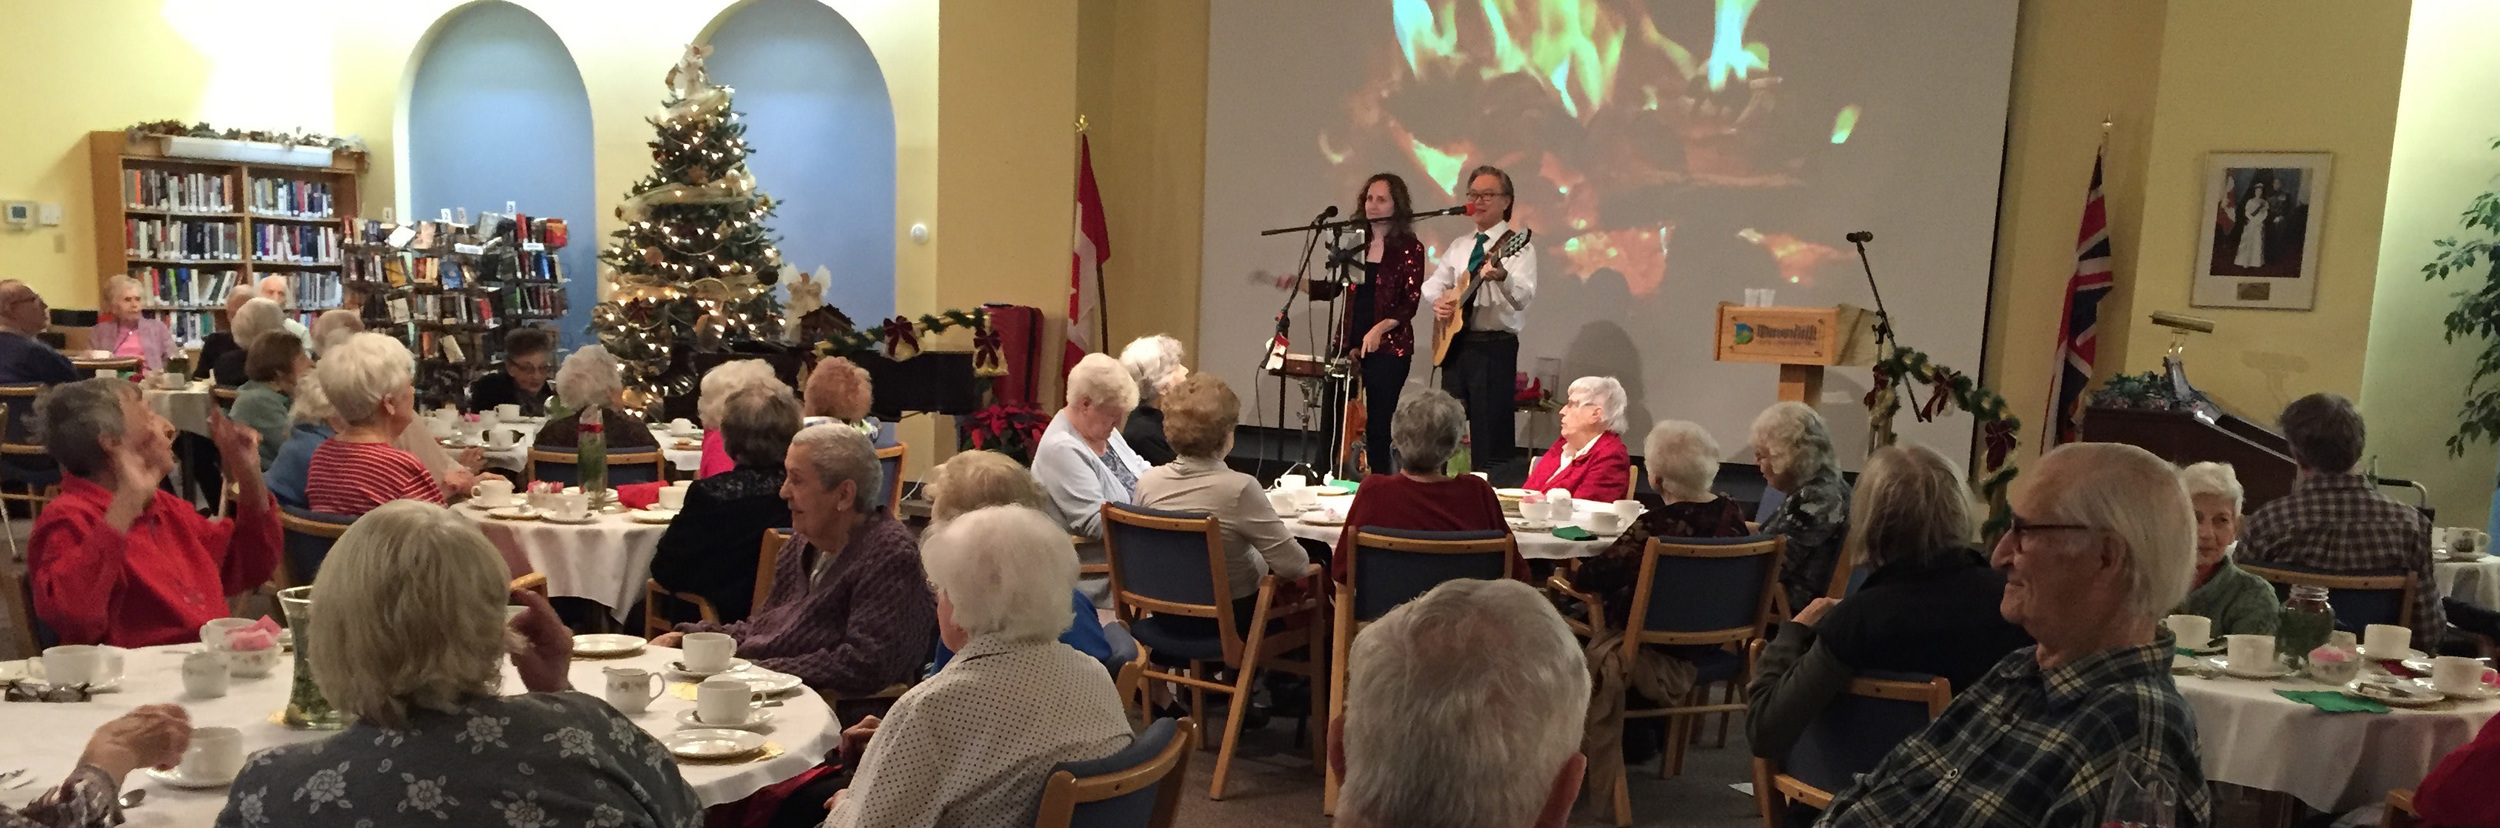 Davenhill Senior Living Holiday Concert